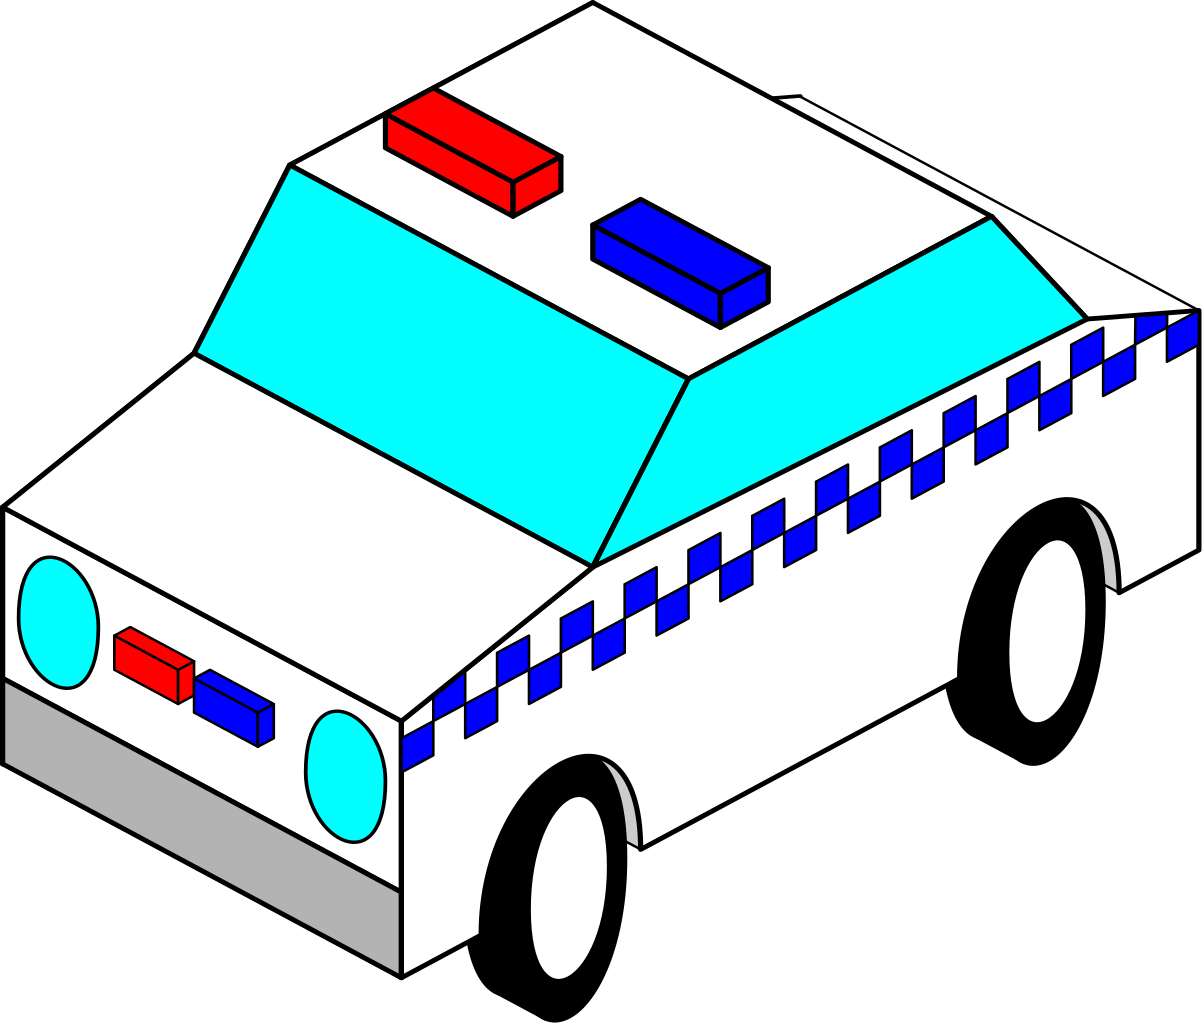 Police car front clipart clip art royalty free stock File:Police Car.svg - Wikimedia Commons clip art royalty free stock